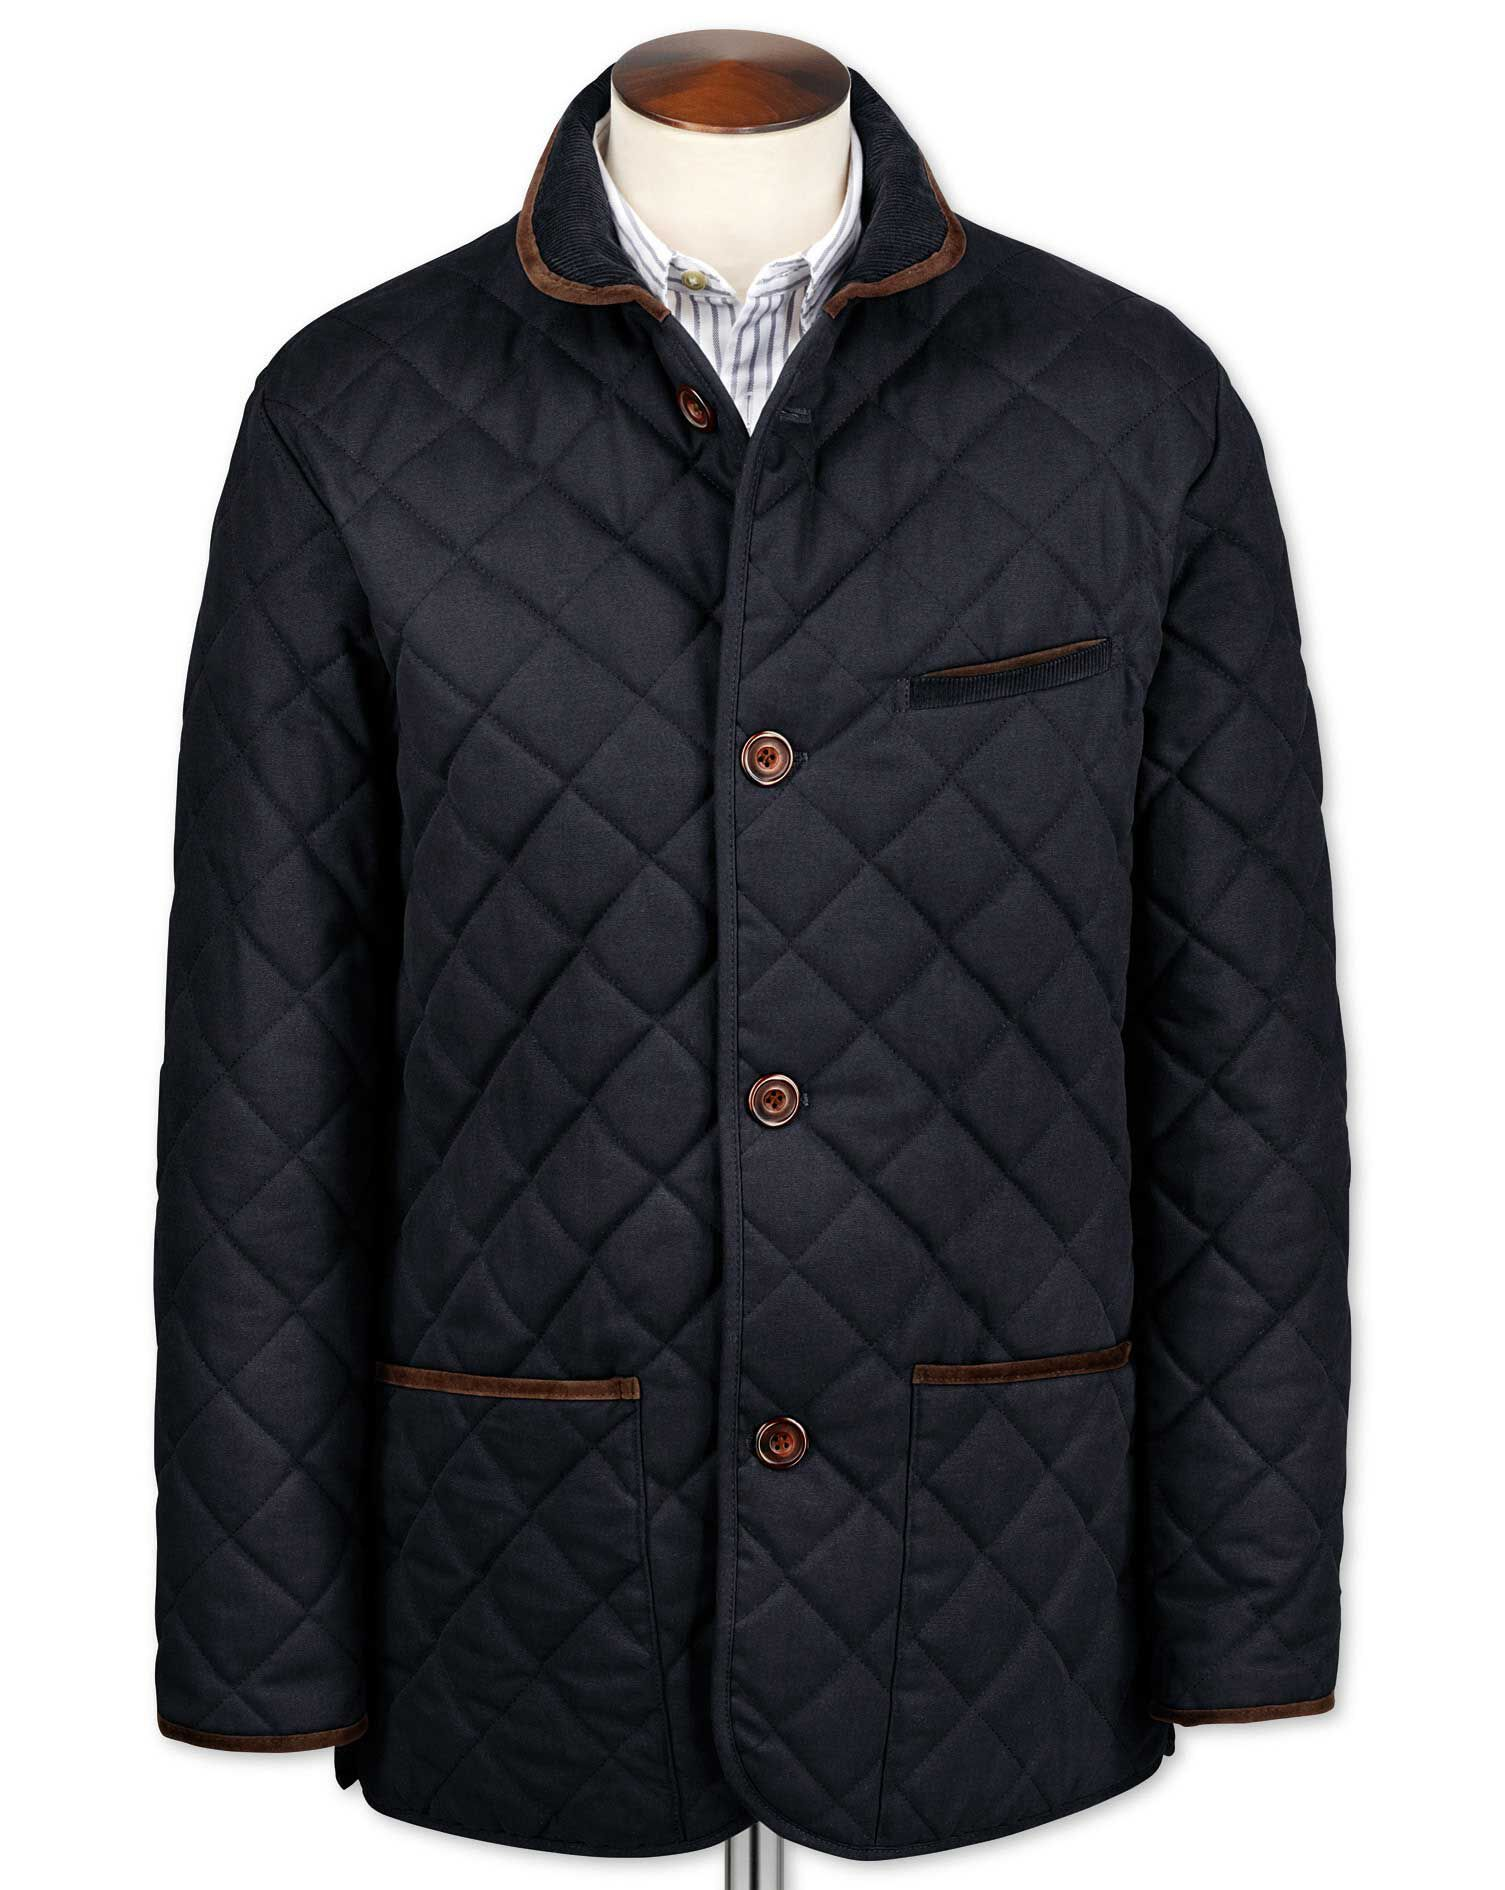 Navy Canvas Quilted Cotton Jacket Size 36 Regular by Charles Tyrwhitt